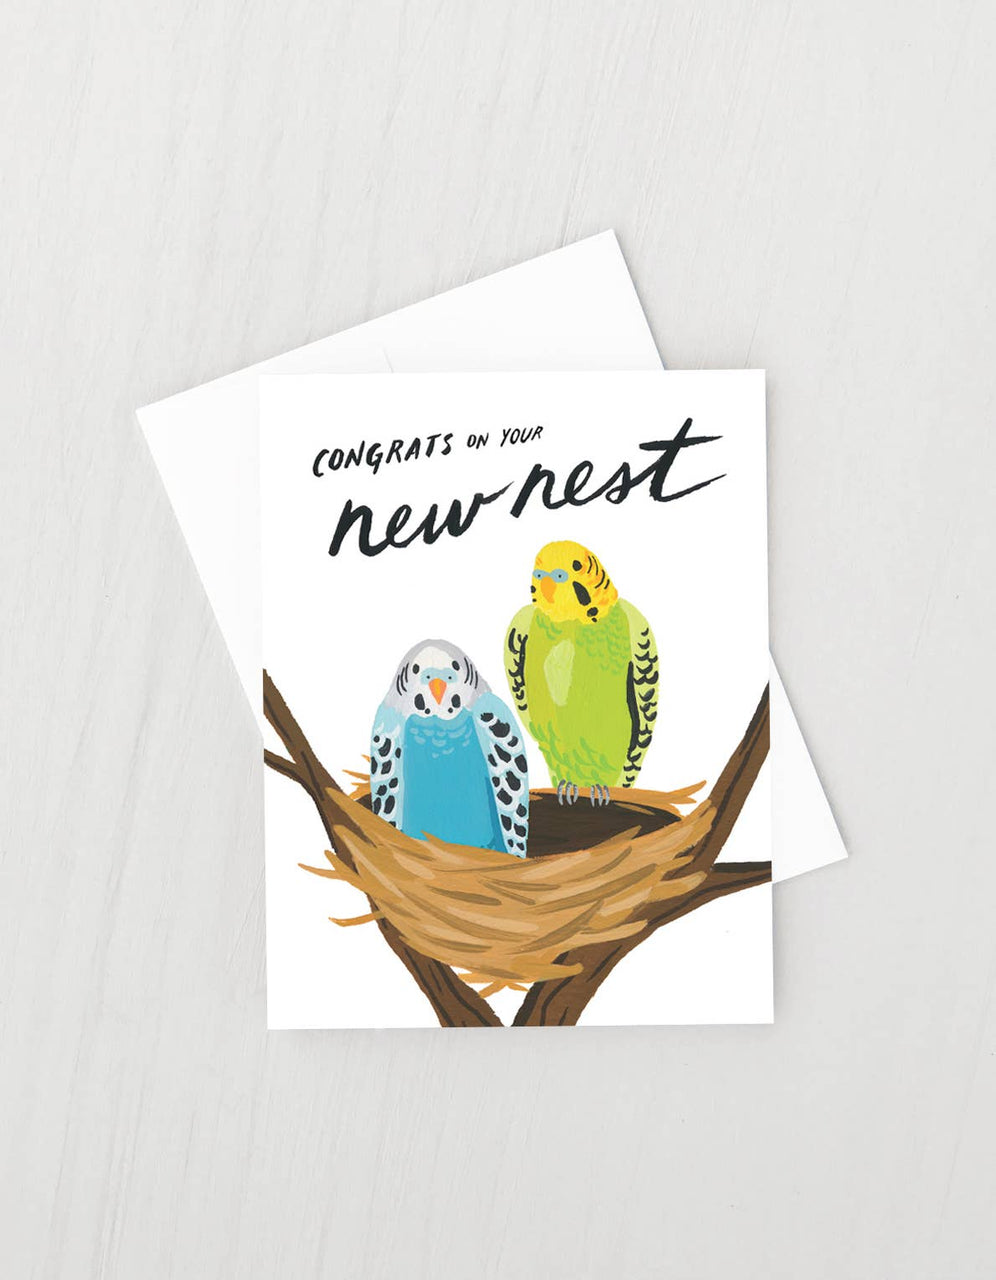 Idlewild - New Nest Card